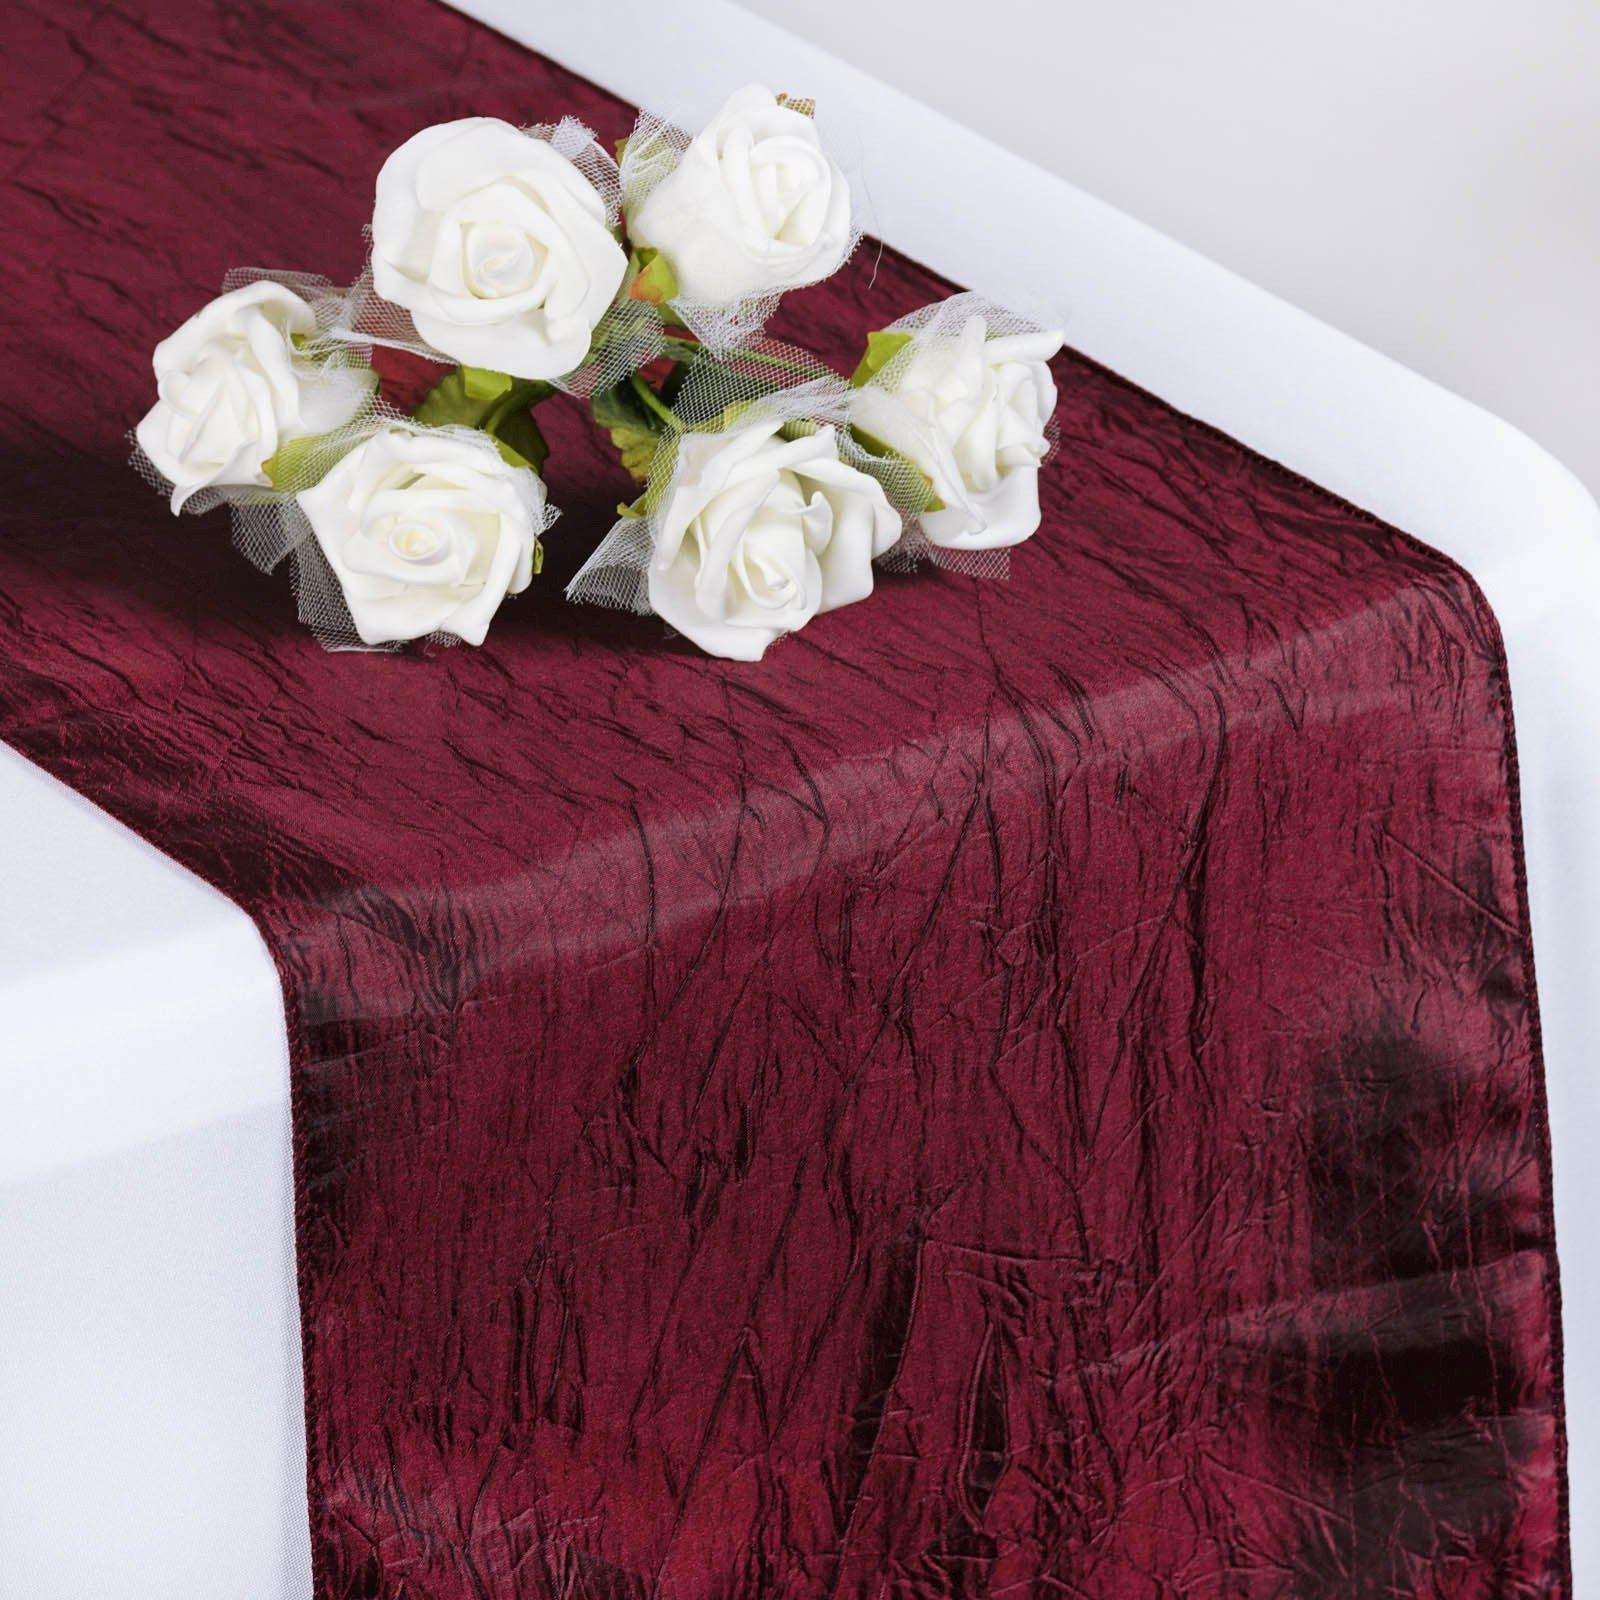 Merveilleux Table Runner Taffeta Crinkle   Burgundy ...